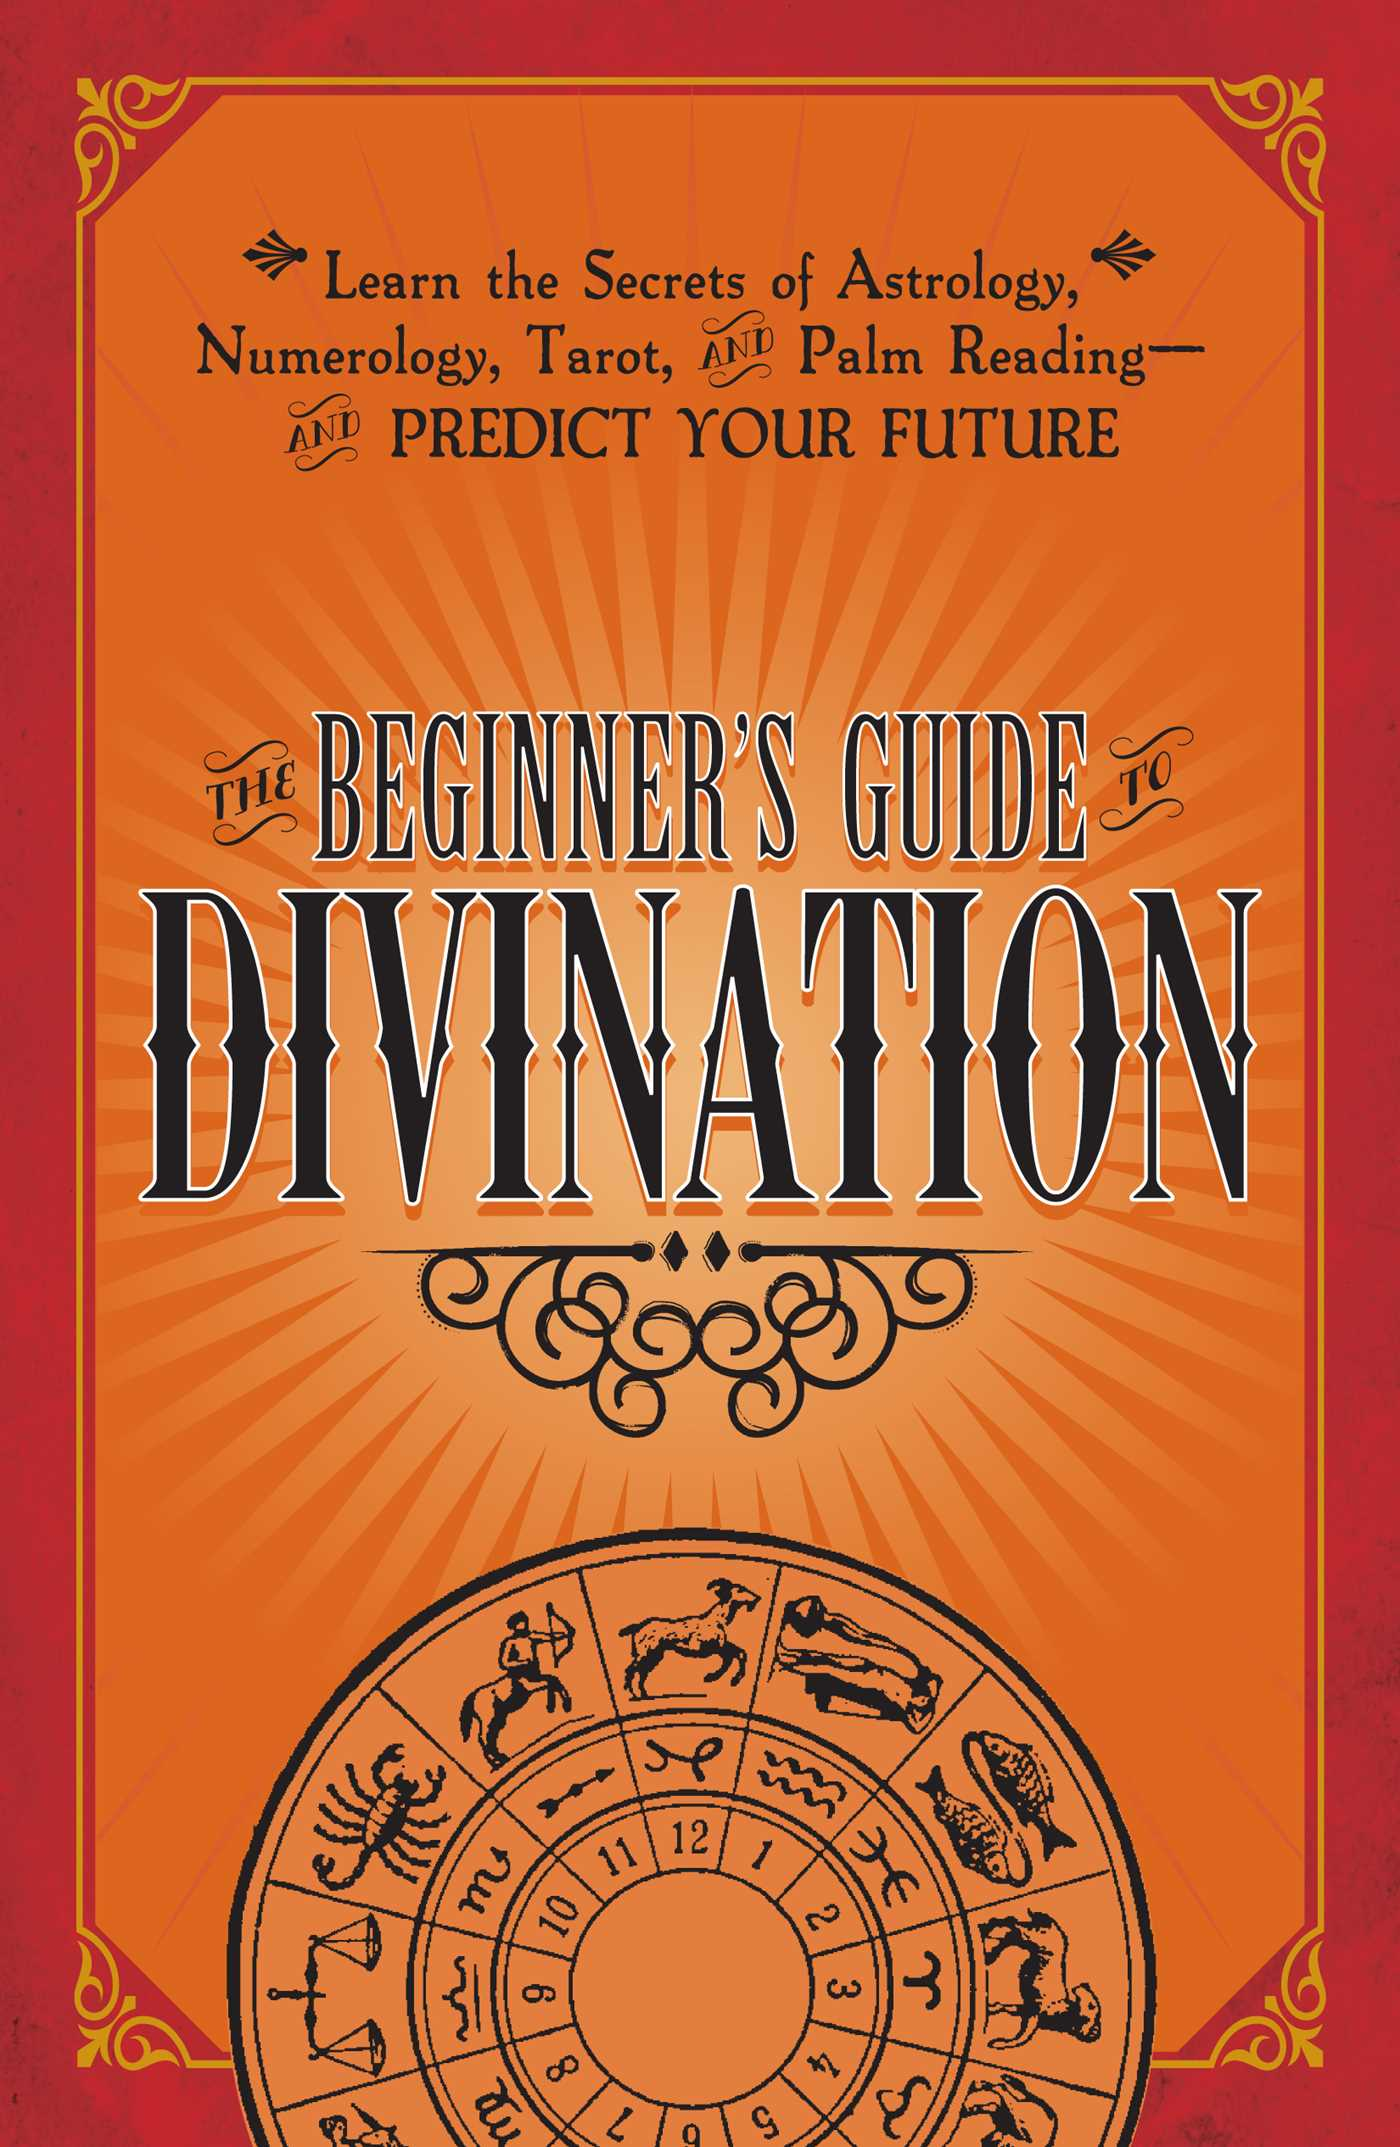 Some of the best divination techniques for the future 76